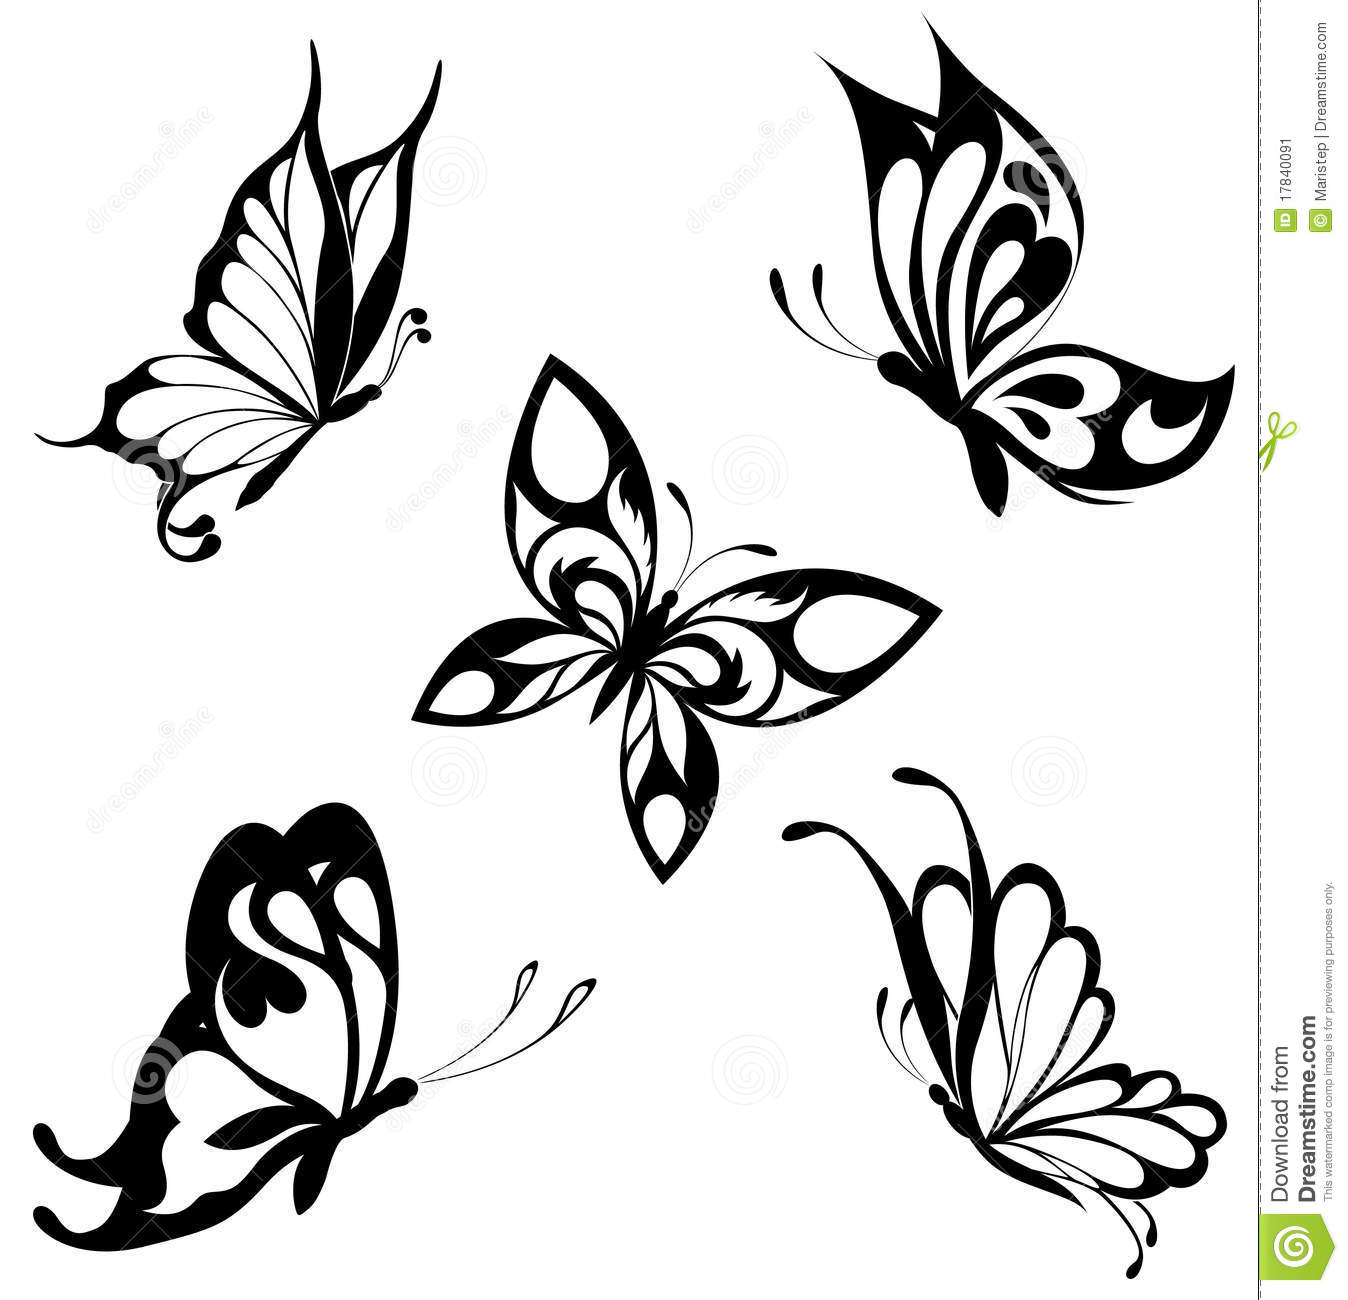 90ffded632819 Set Black White Butterflies Of A Tattoo Stock Vector - Illustration ...